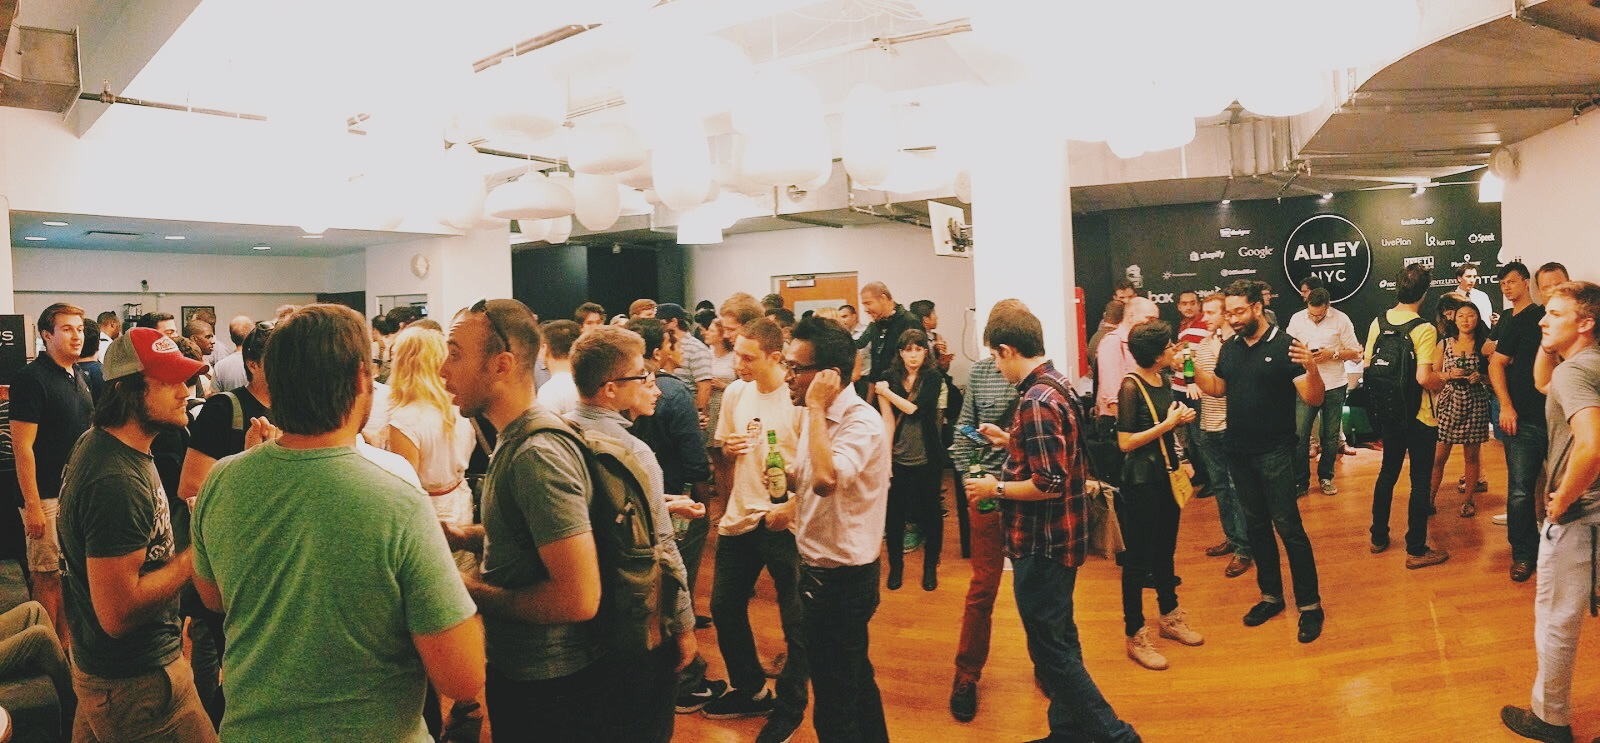 An Image from the Product Hunt Meetup in NYC